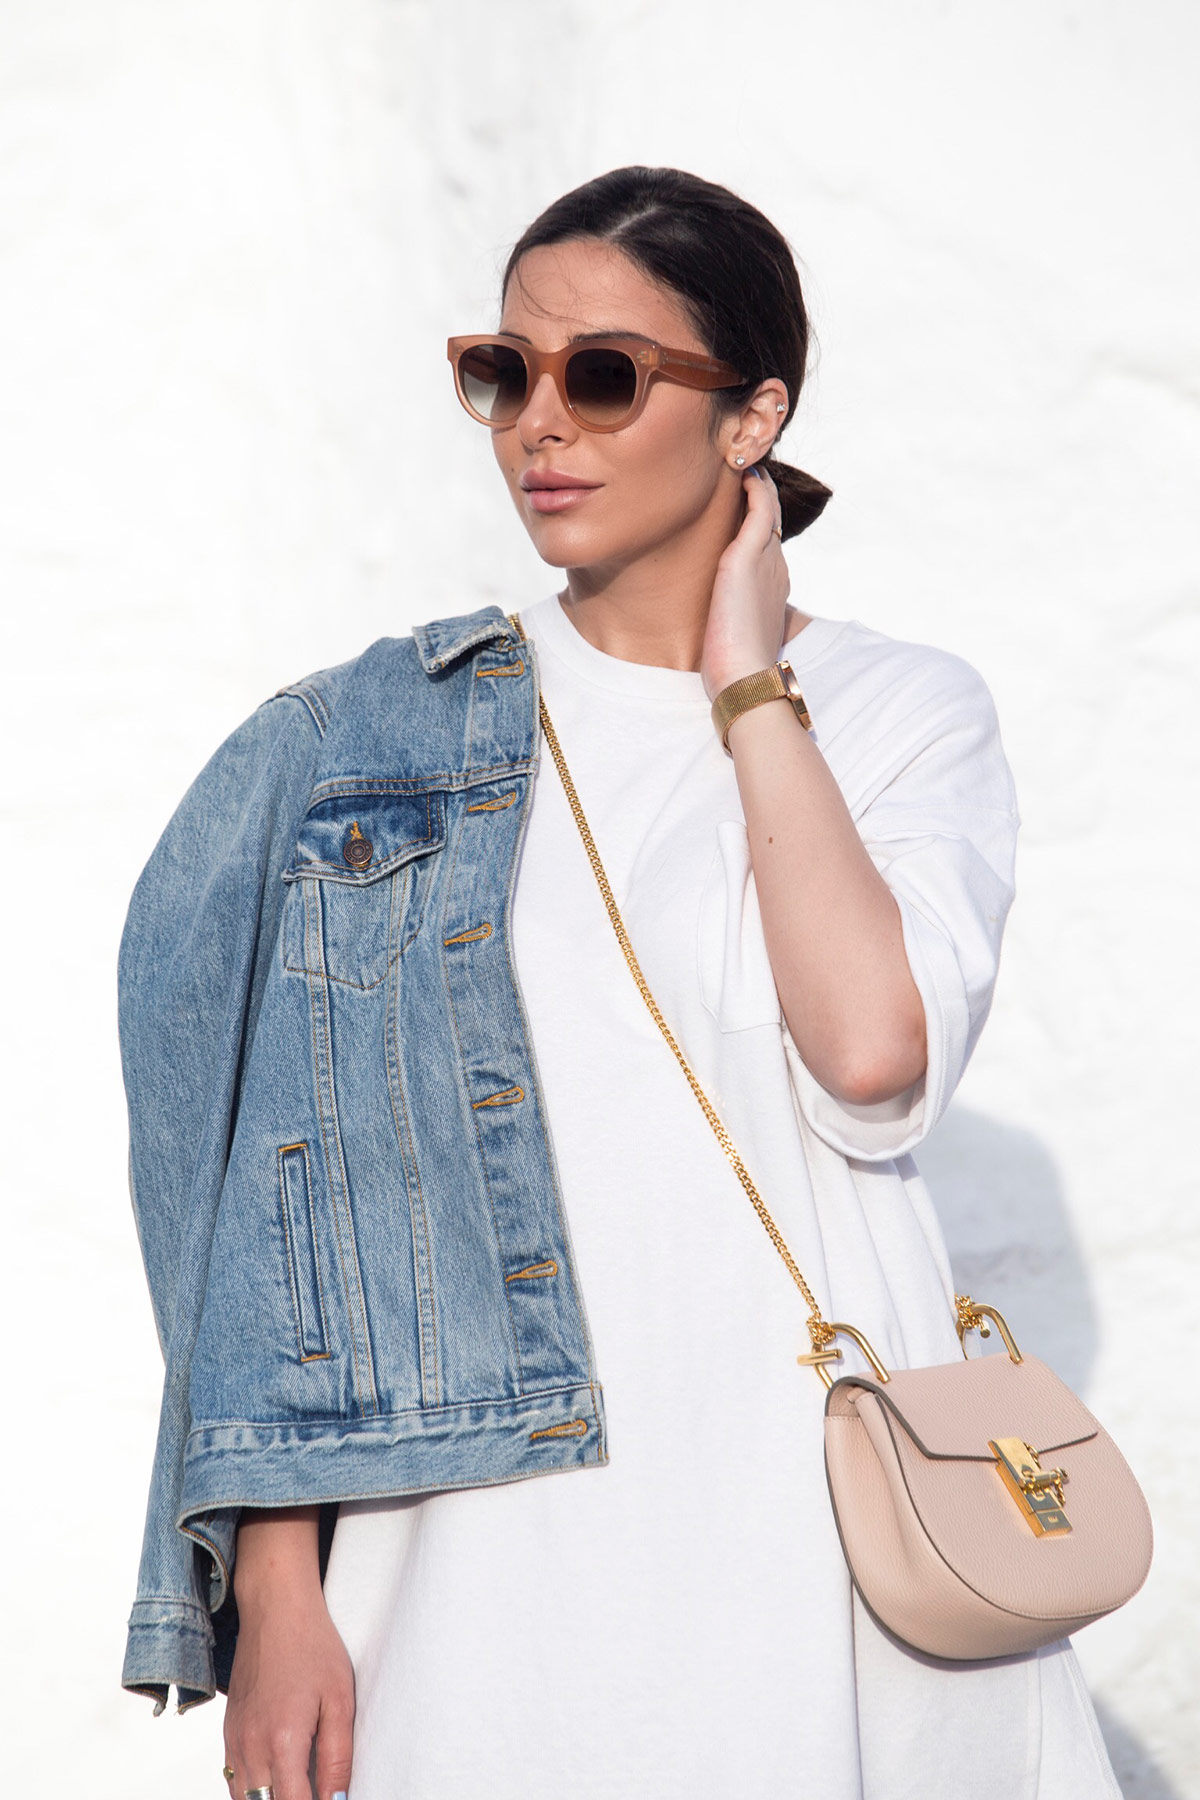 Chloe Drew bag mini, Celine sunglasses, denim jacket and gladiator sandals as seen at Stella Asteria | Fashion & Lifestyle Blogger